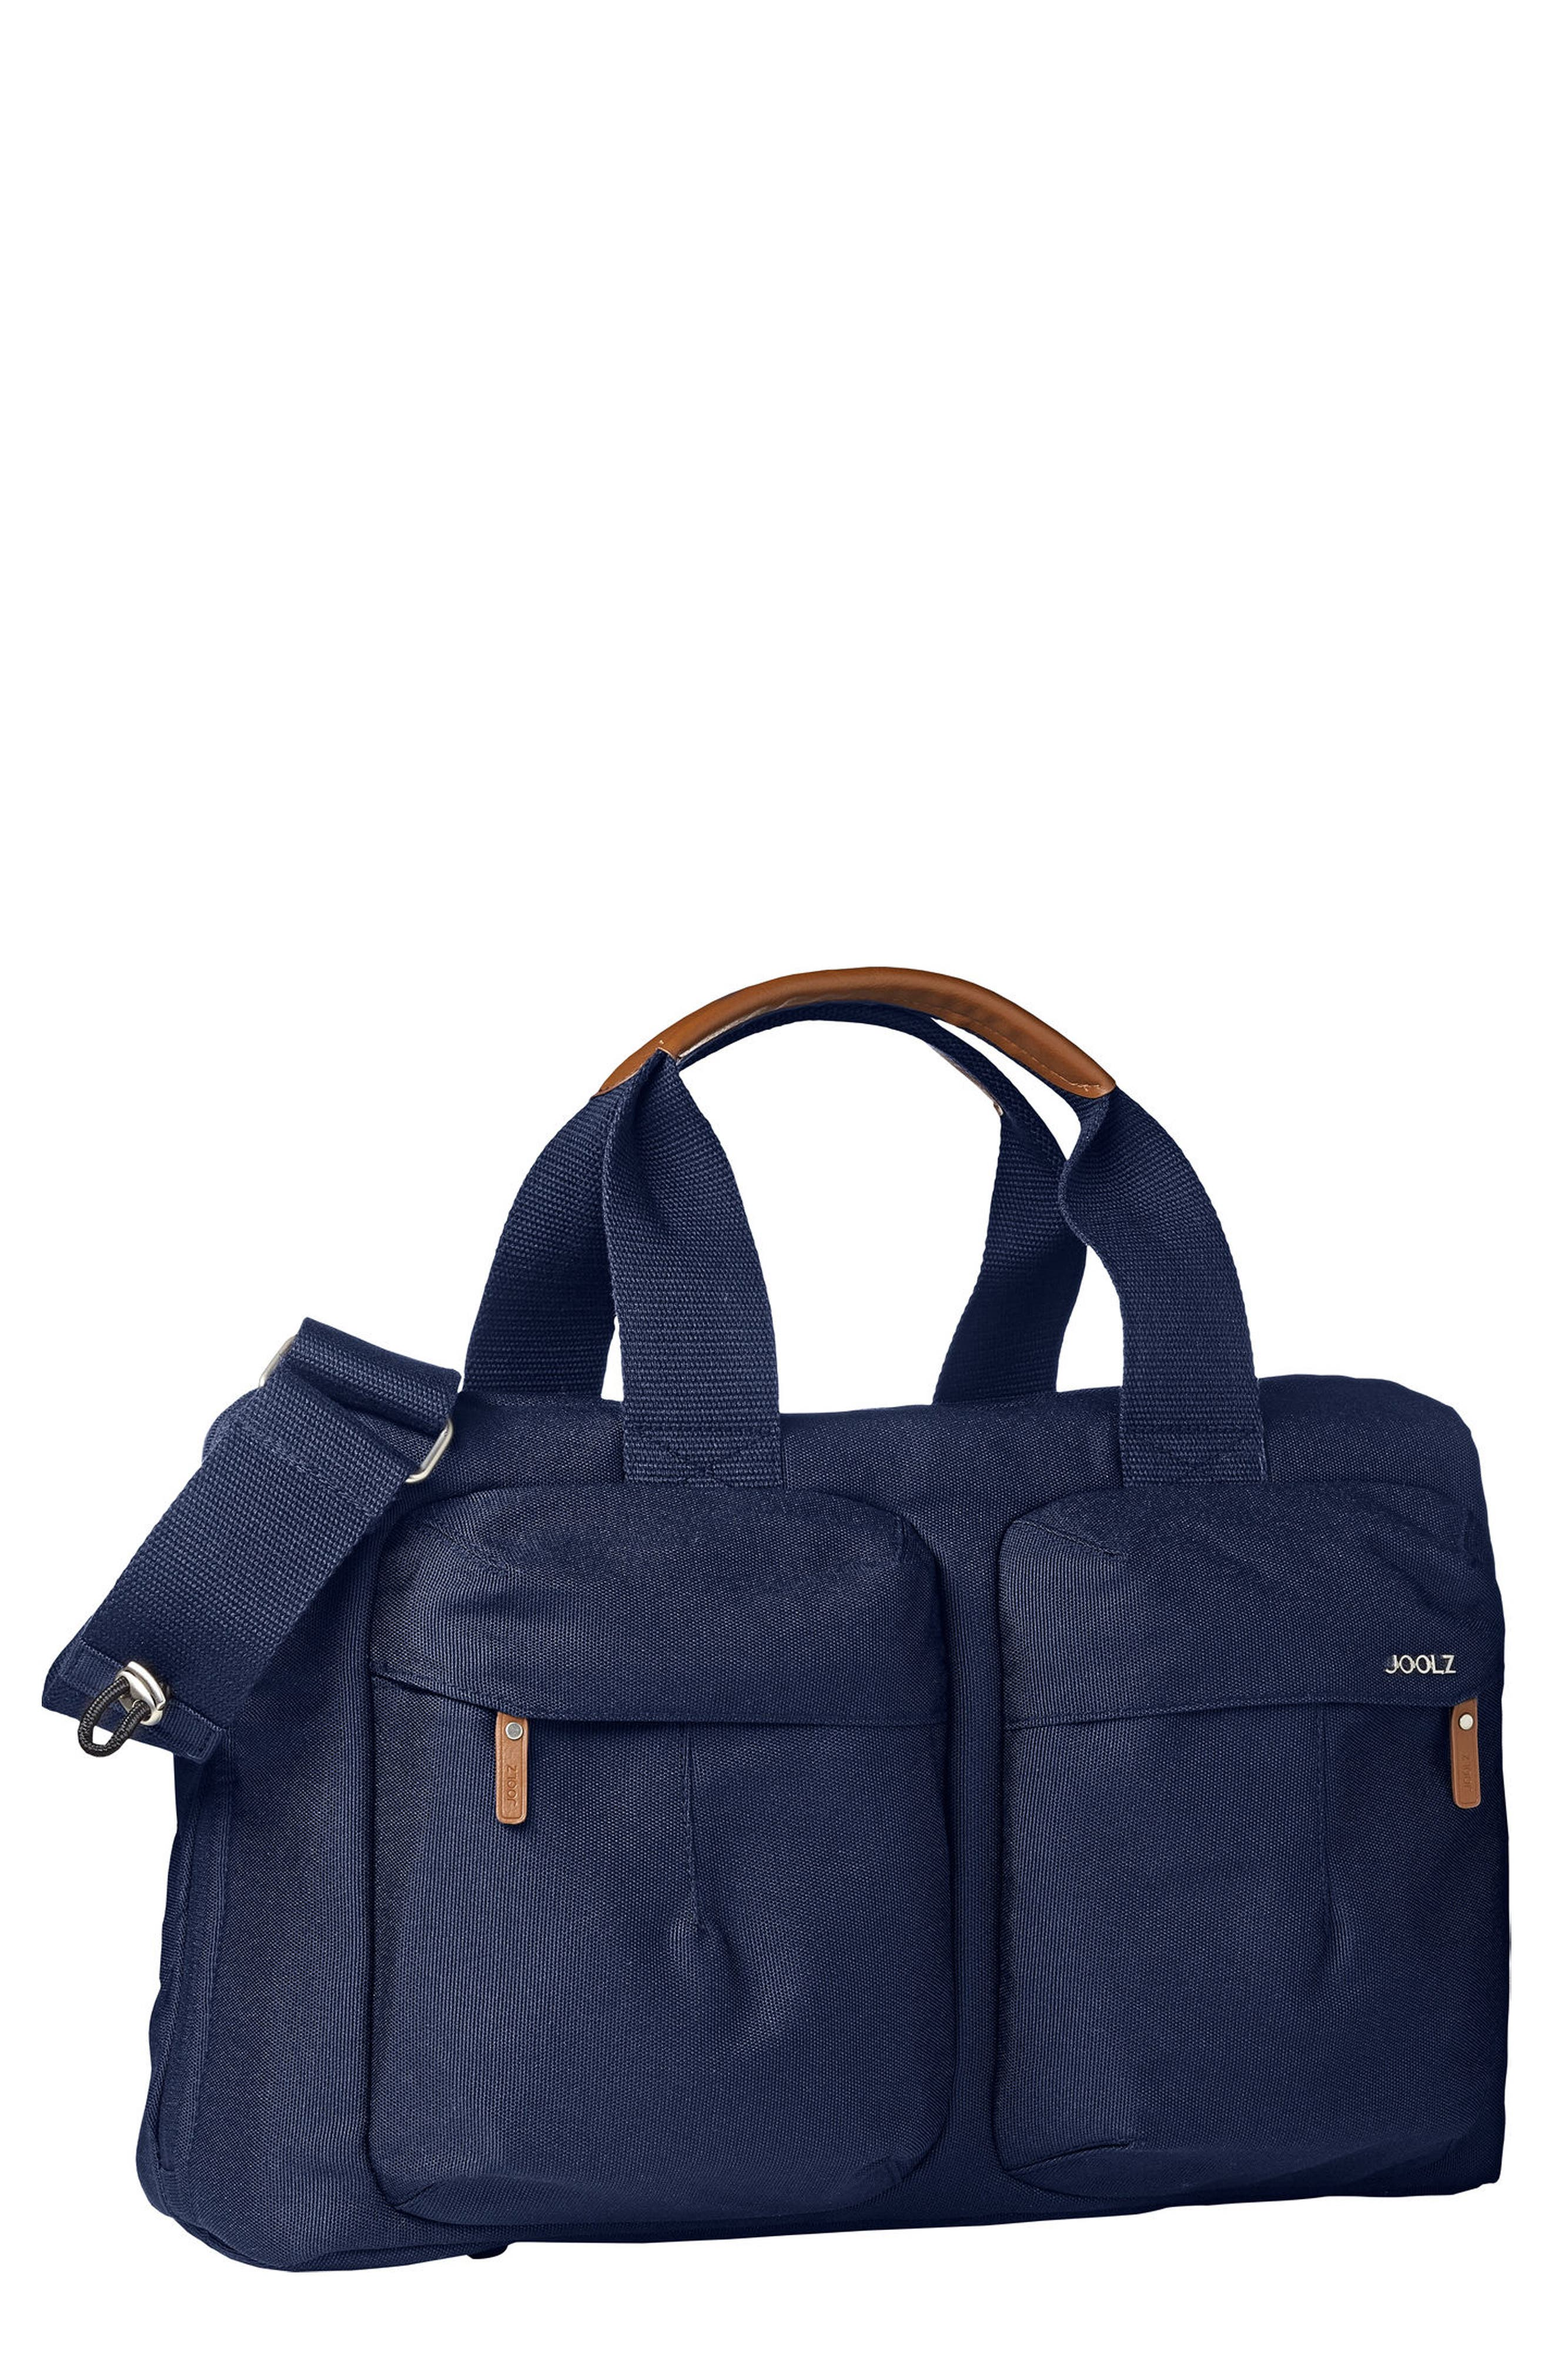 Earth Diaper Bag,                         Main,                         color, Parrot Blue